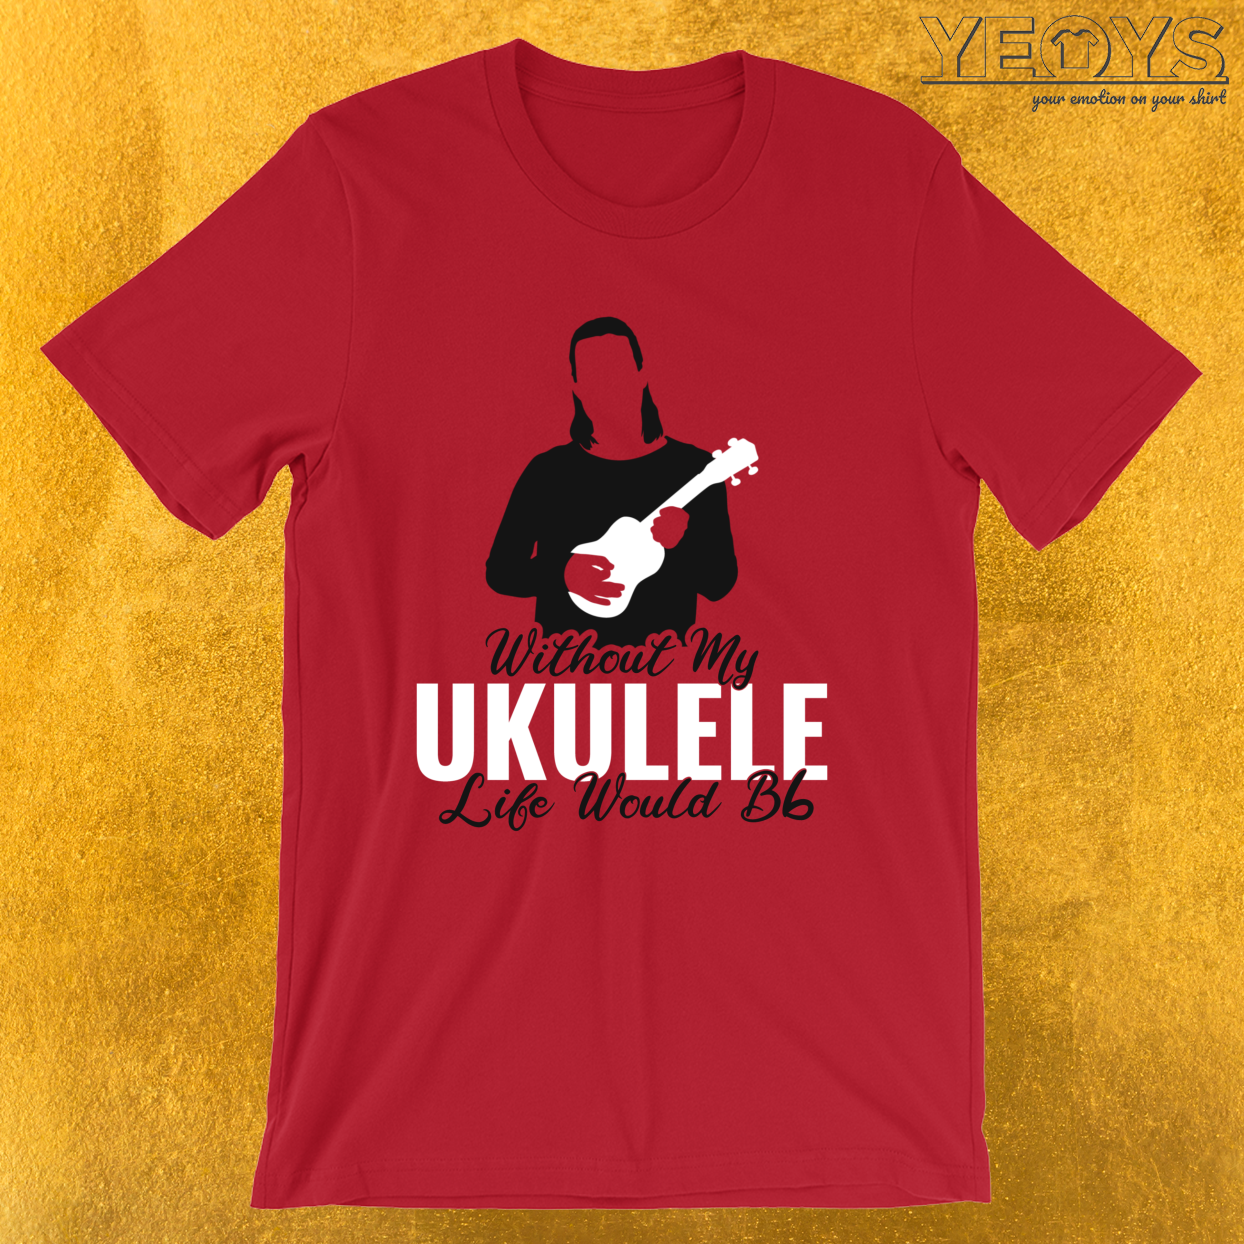 Without My Ukulele Life Would Be Flat – Ukulele Guitar Tee